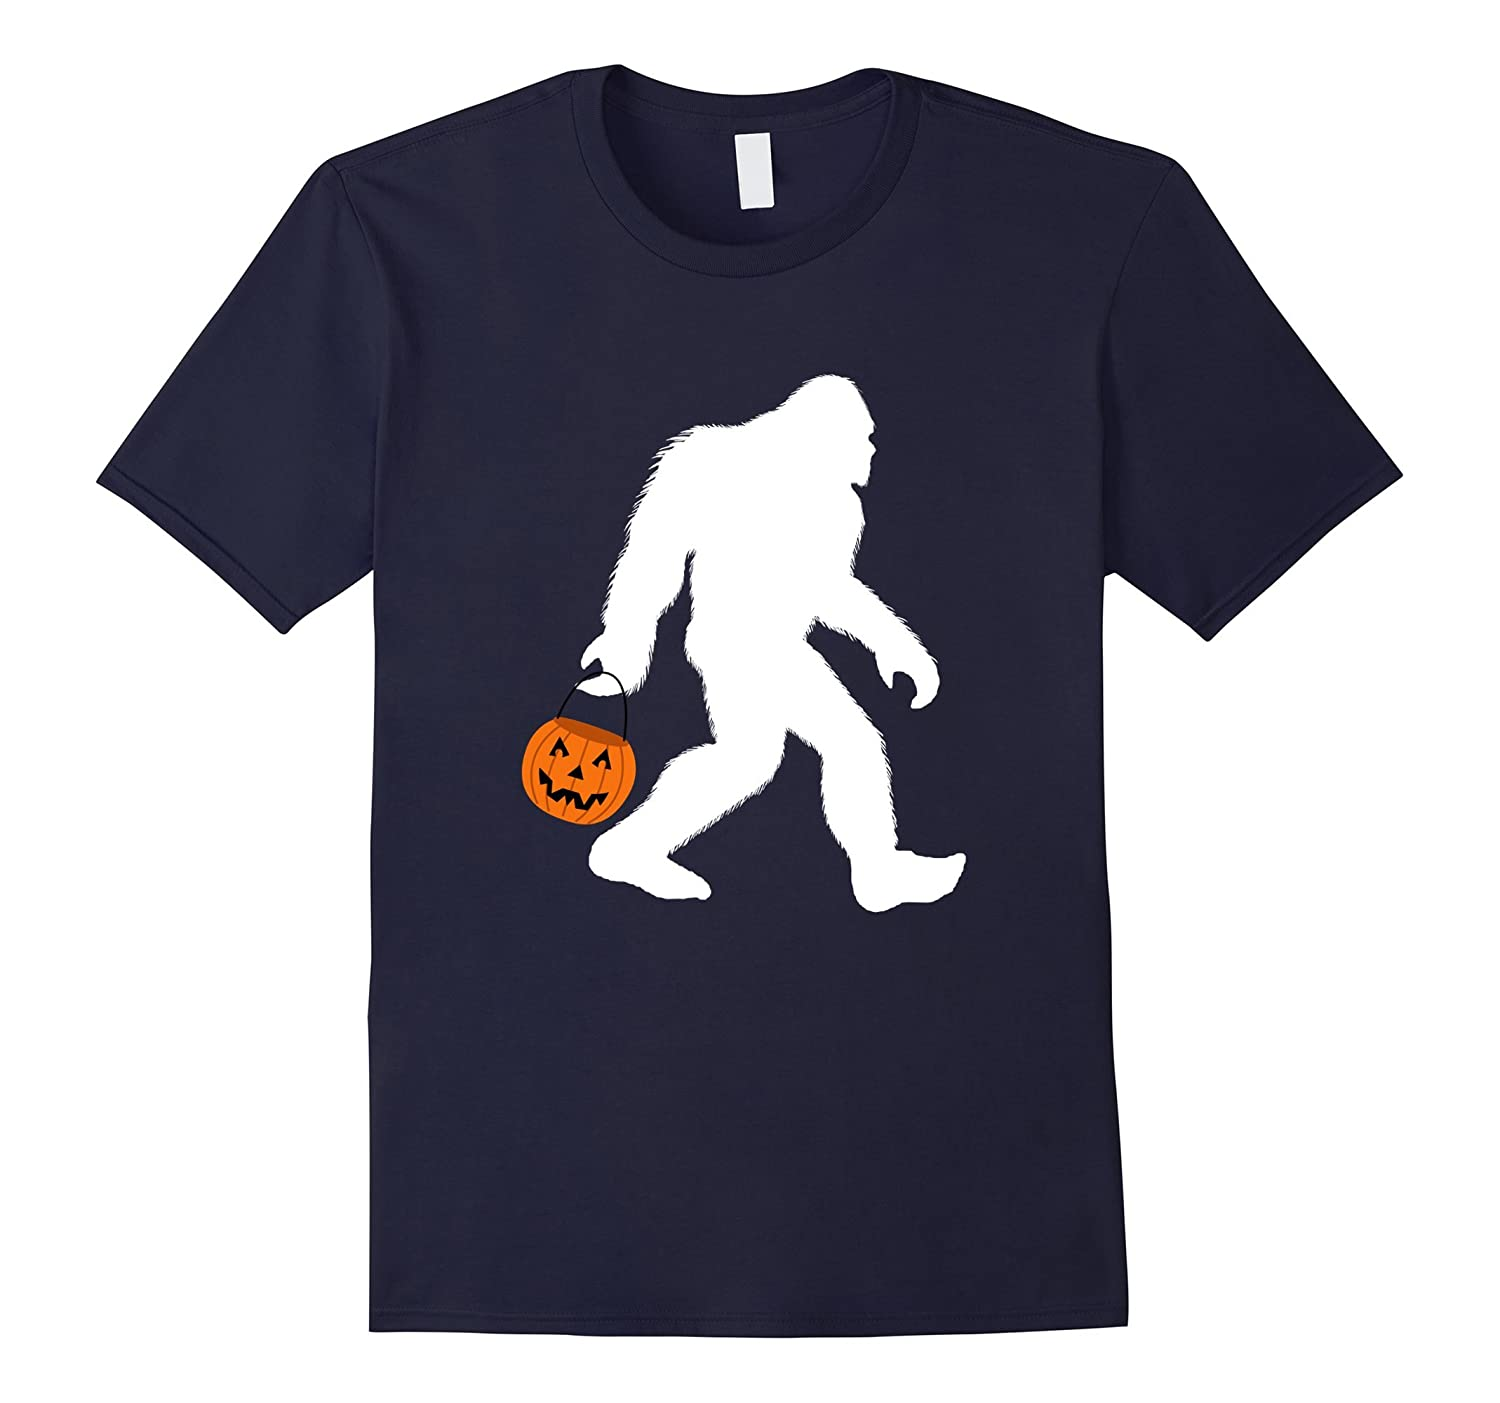 Bigfoot Halloween Costume Shirt Funny for Men Women Boy Girl-FL